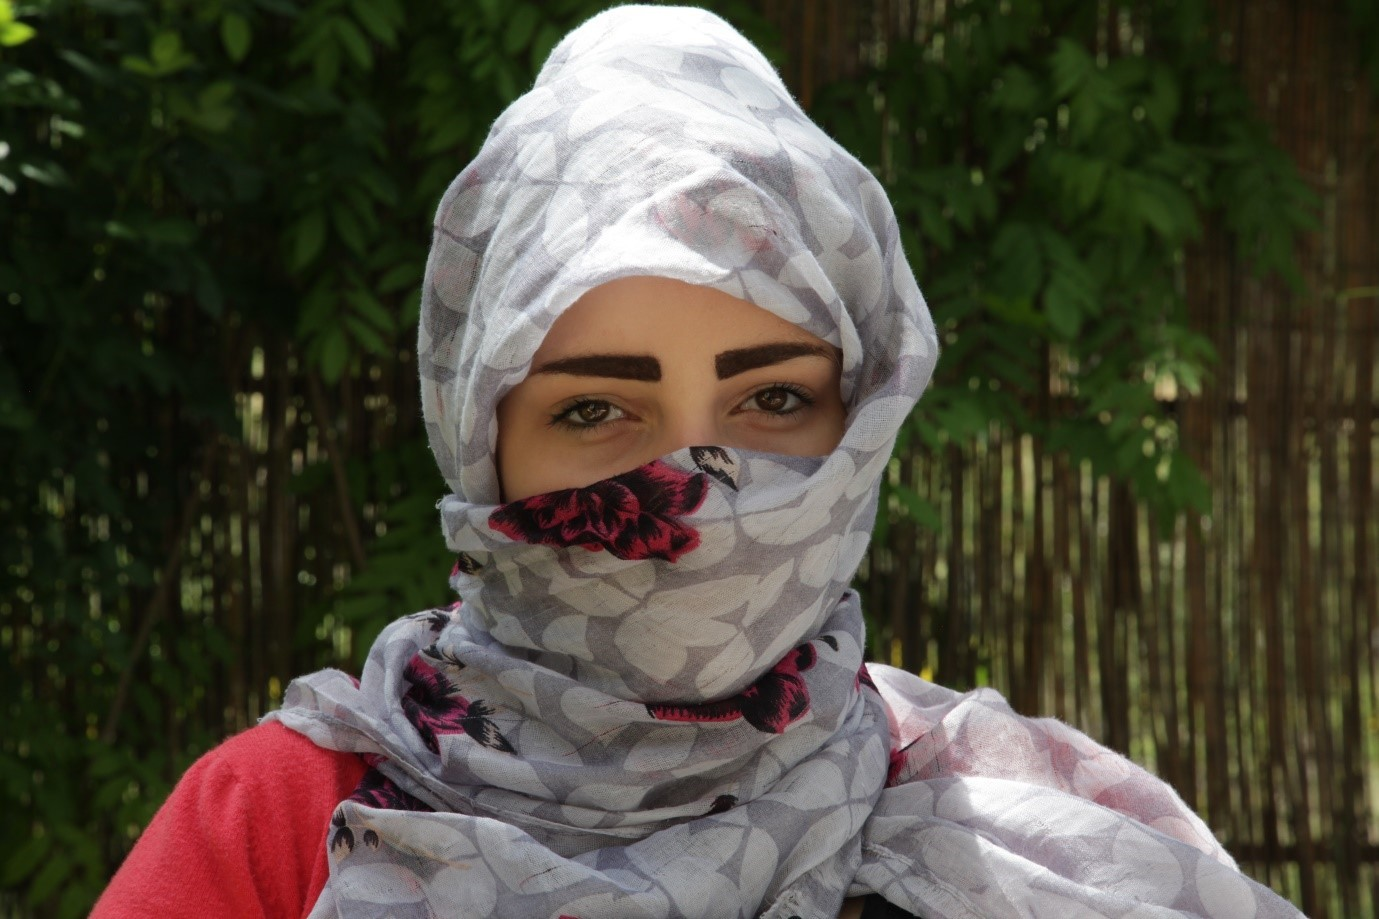 syrian refugee wearing headscarf